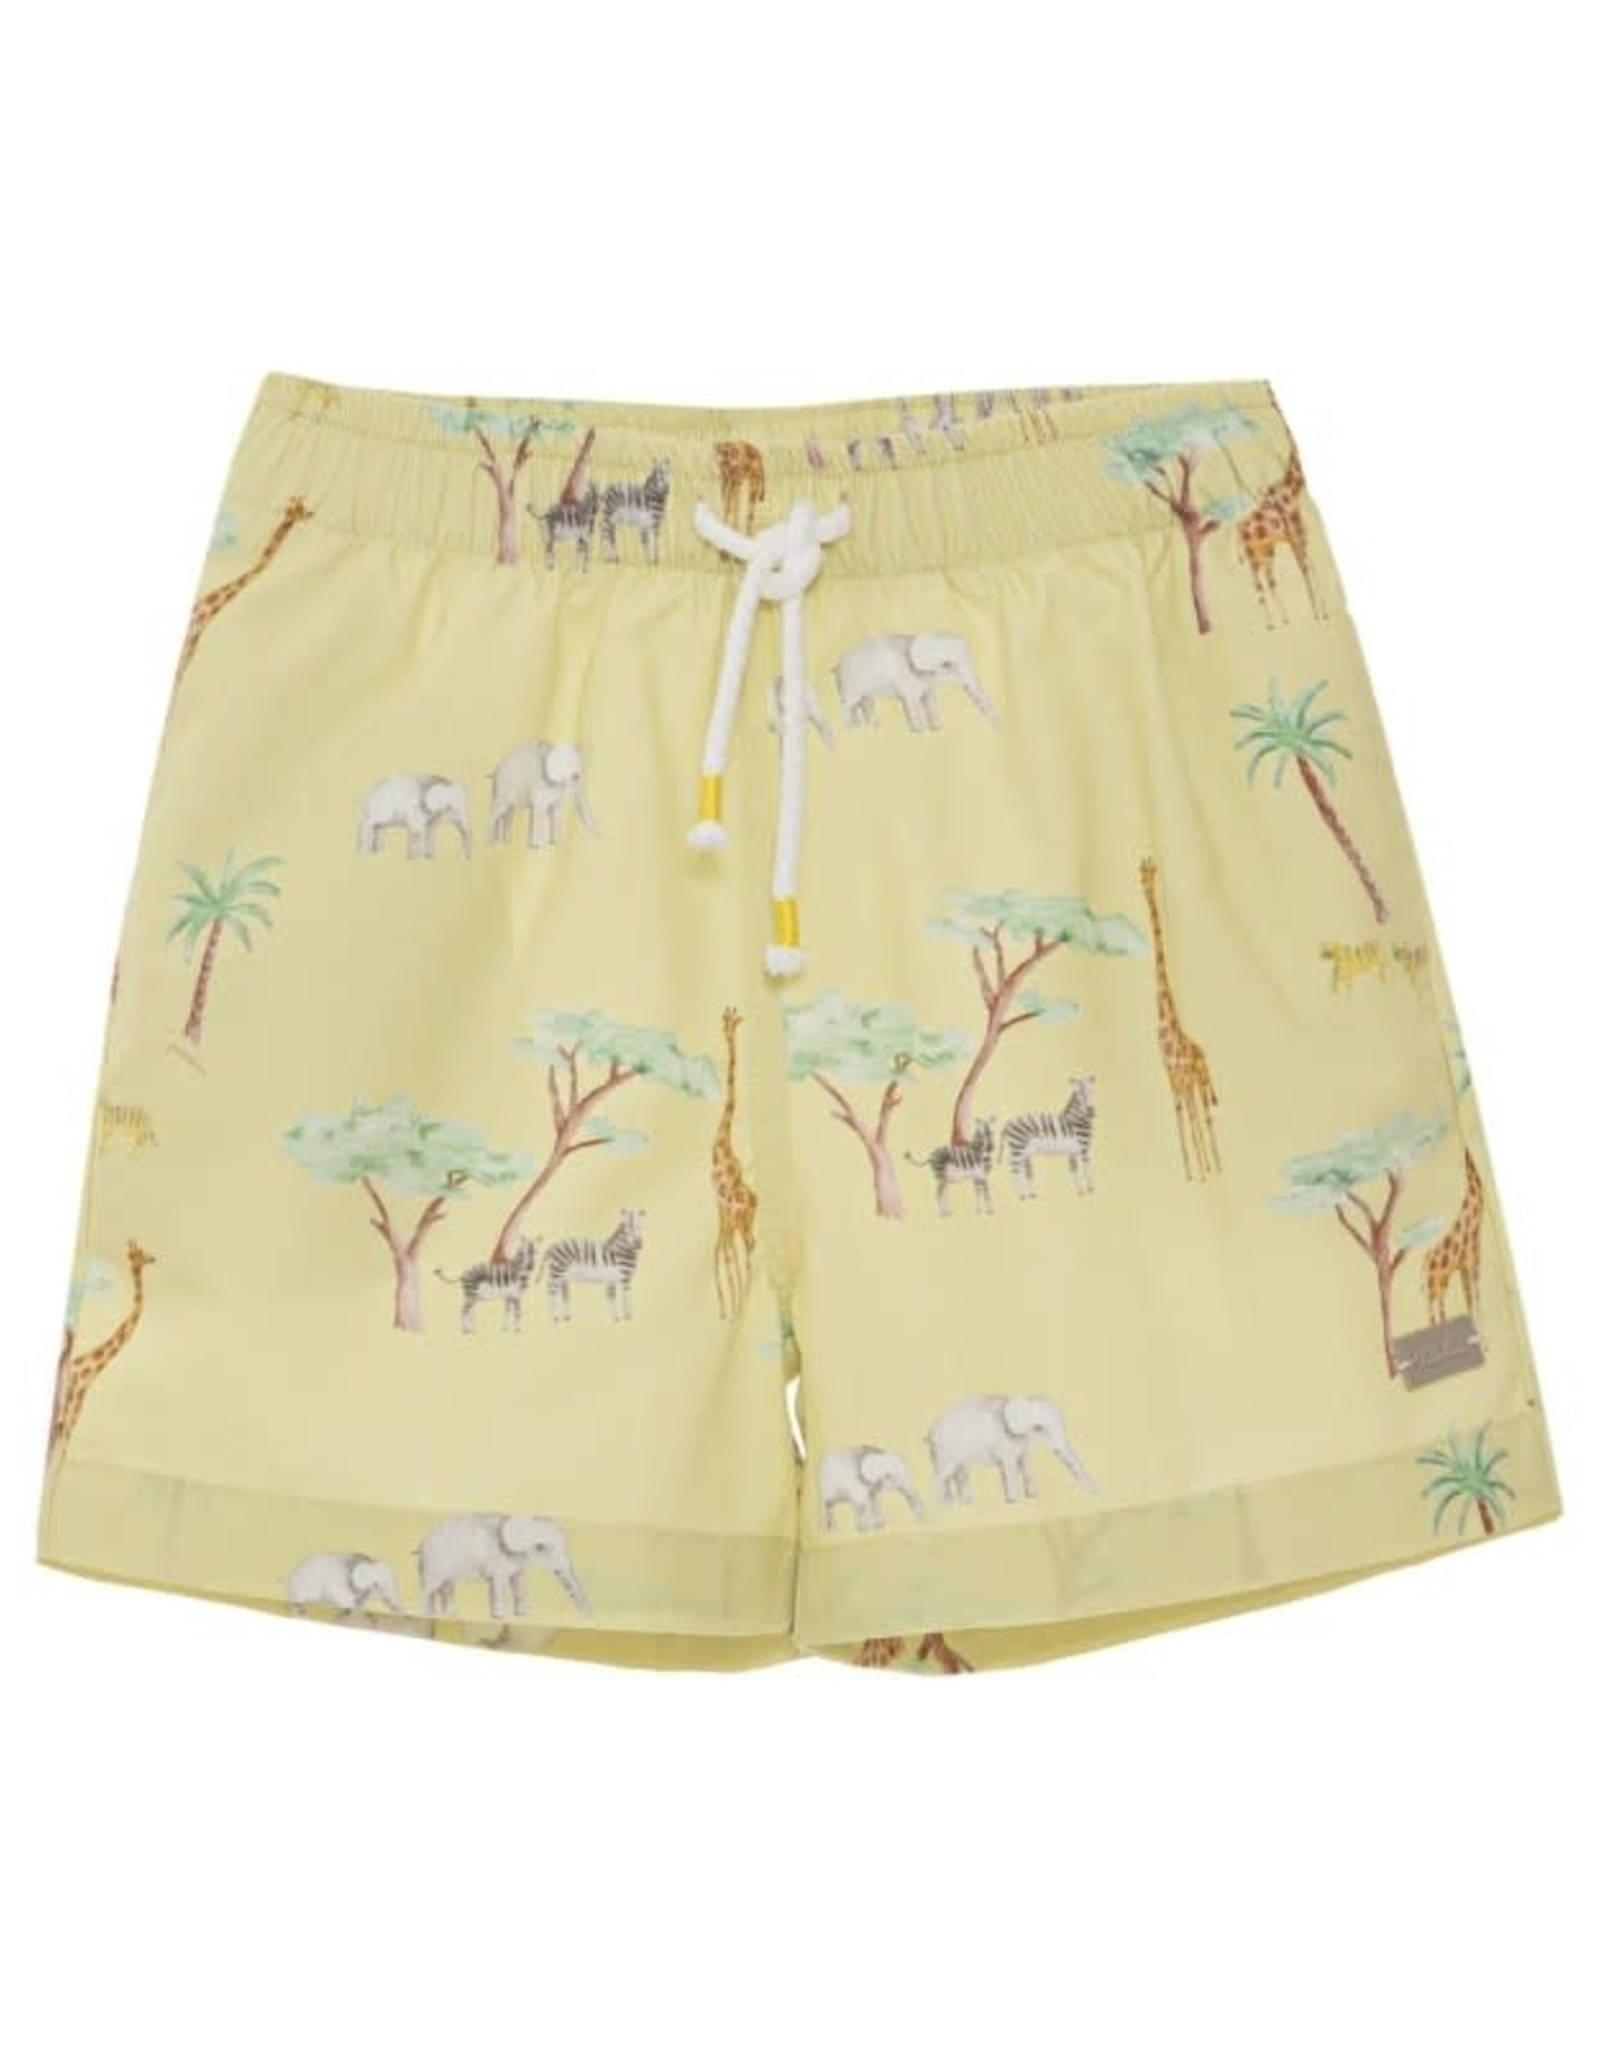 PATACHOU PATACHOU boy short 3233628/1310